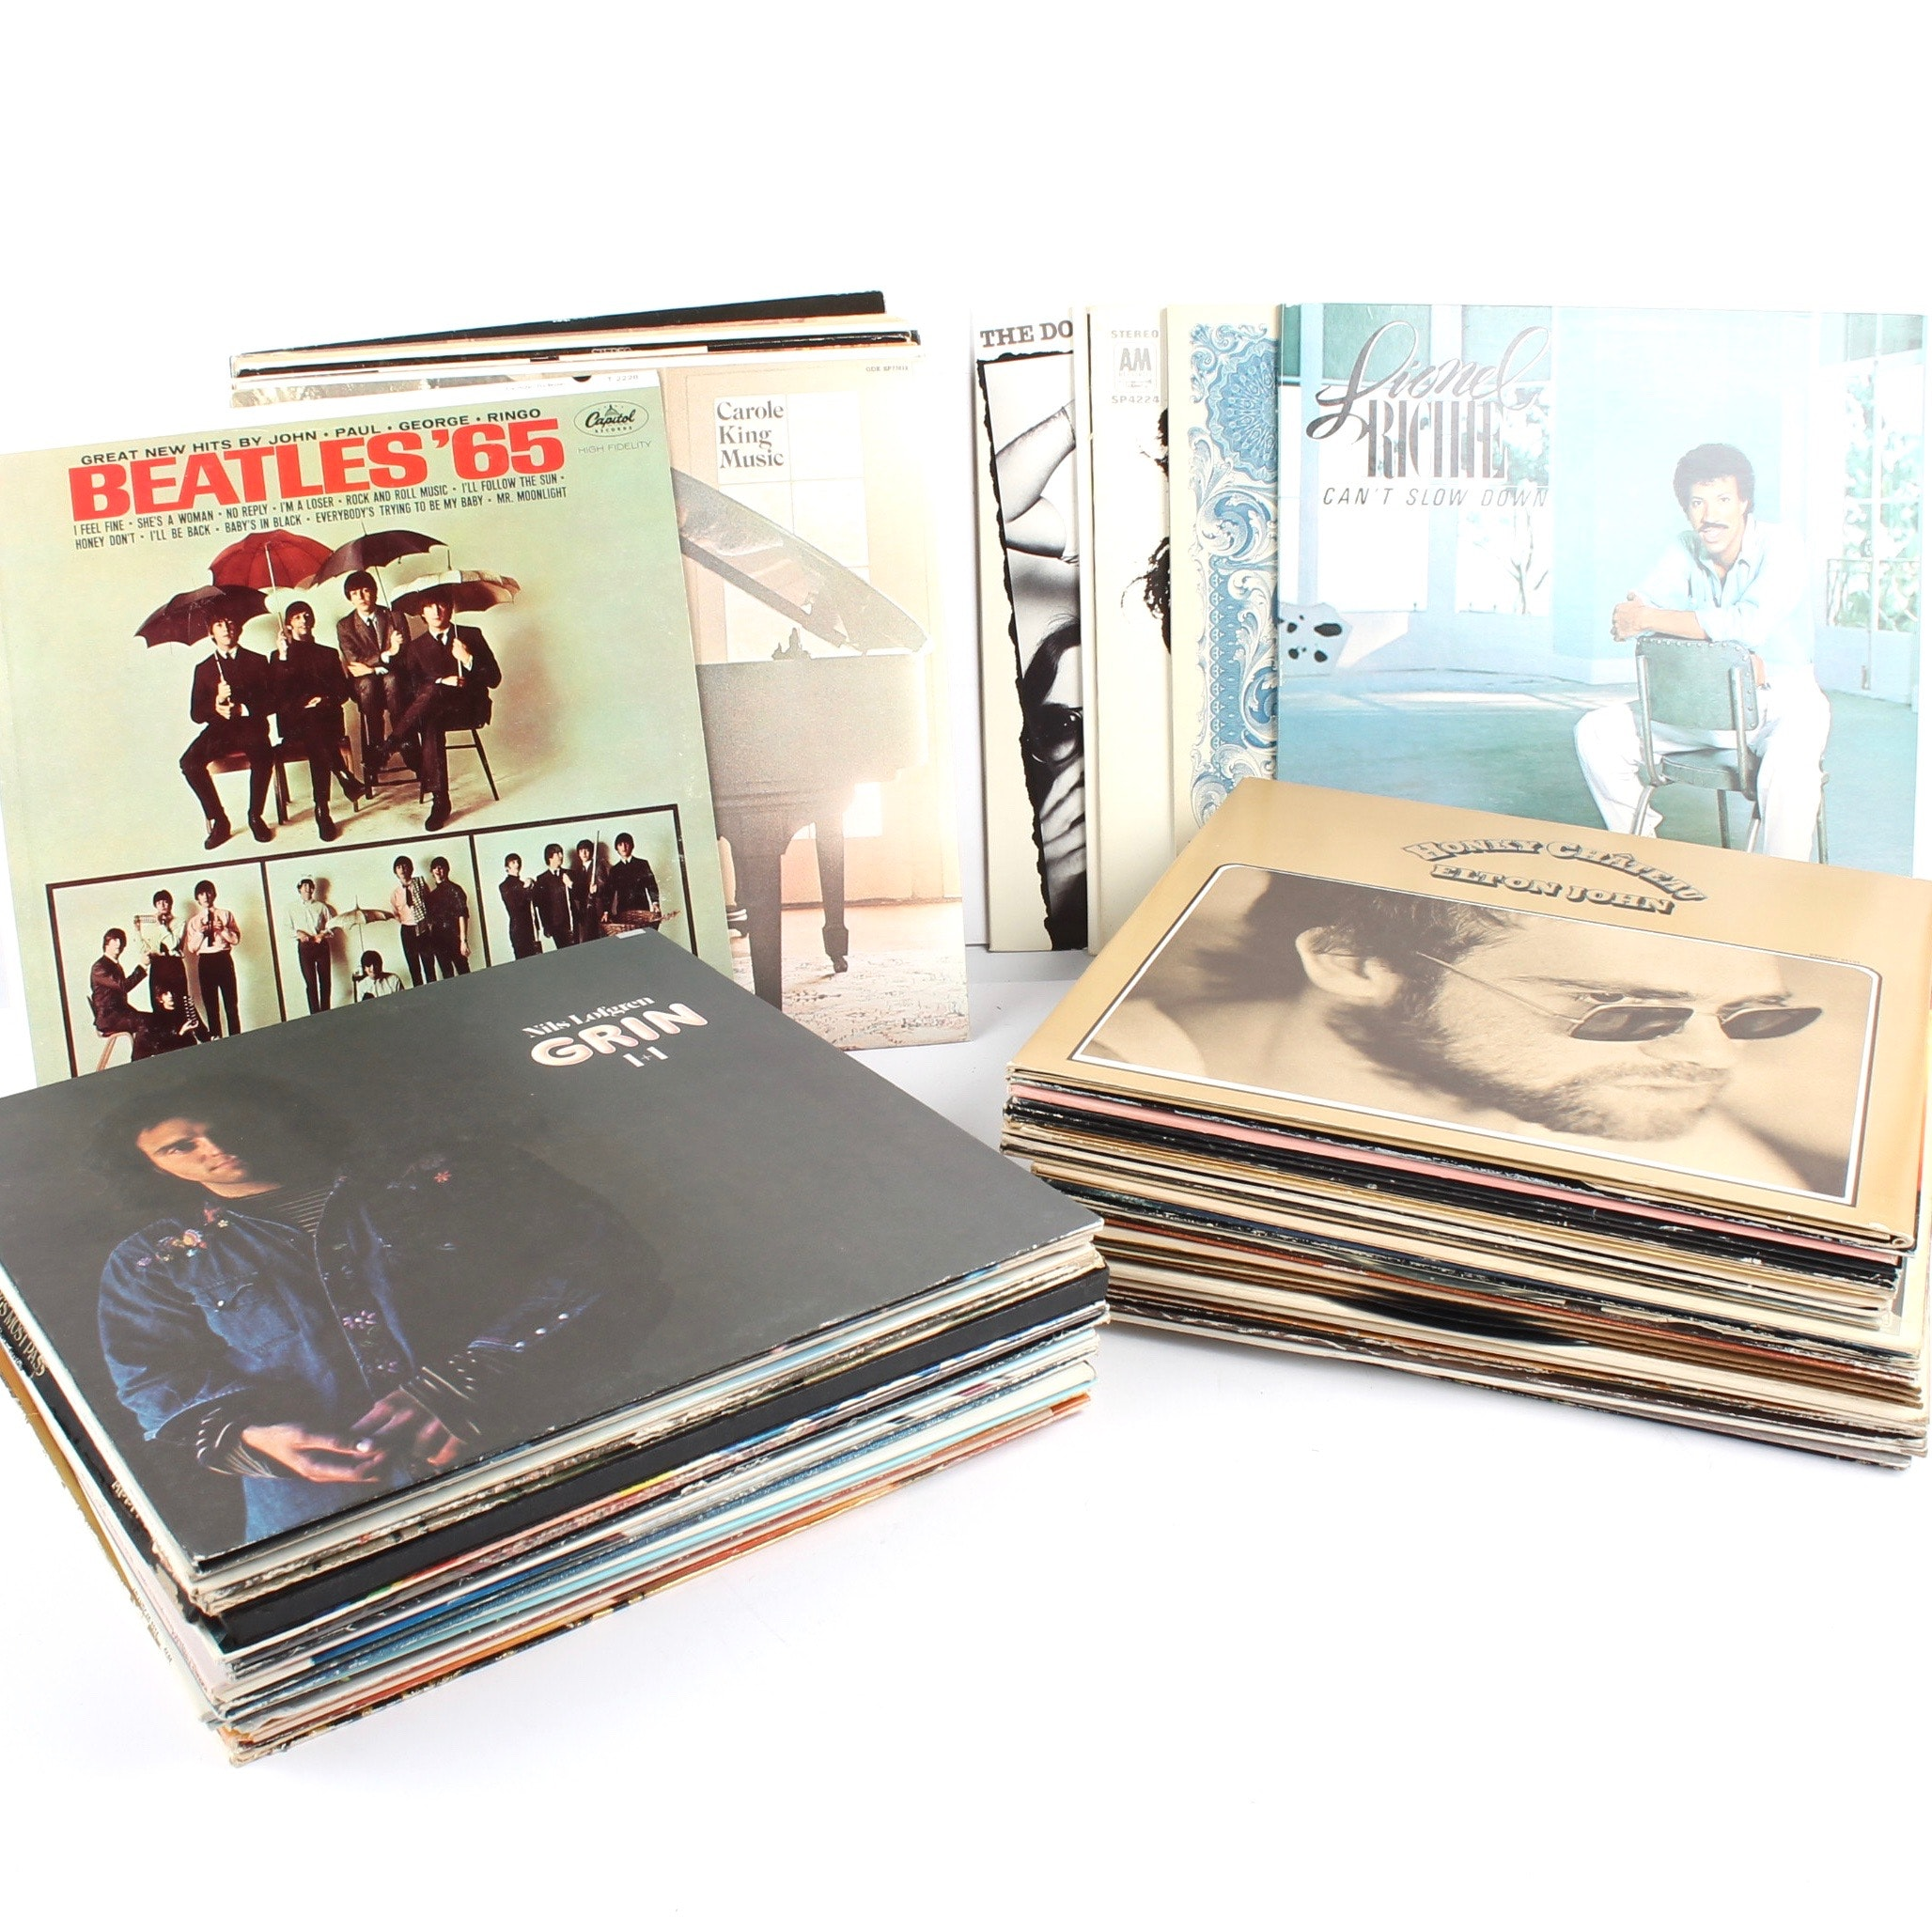 Collection of 33 RPM Popular Music Records